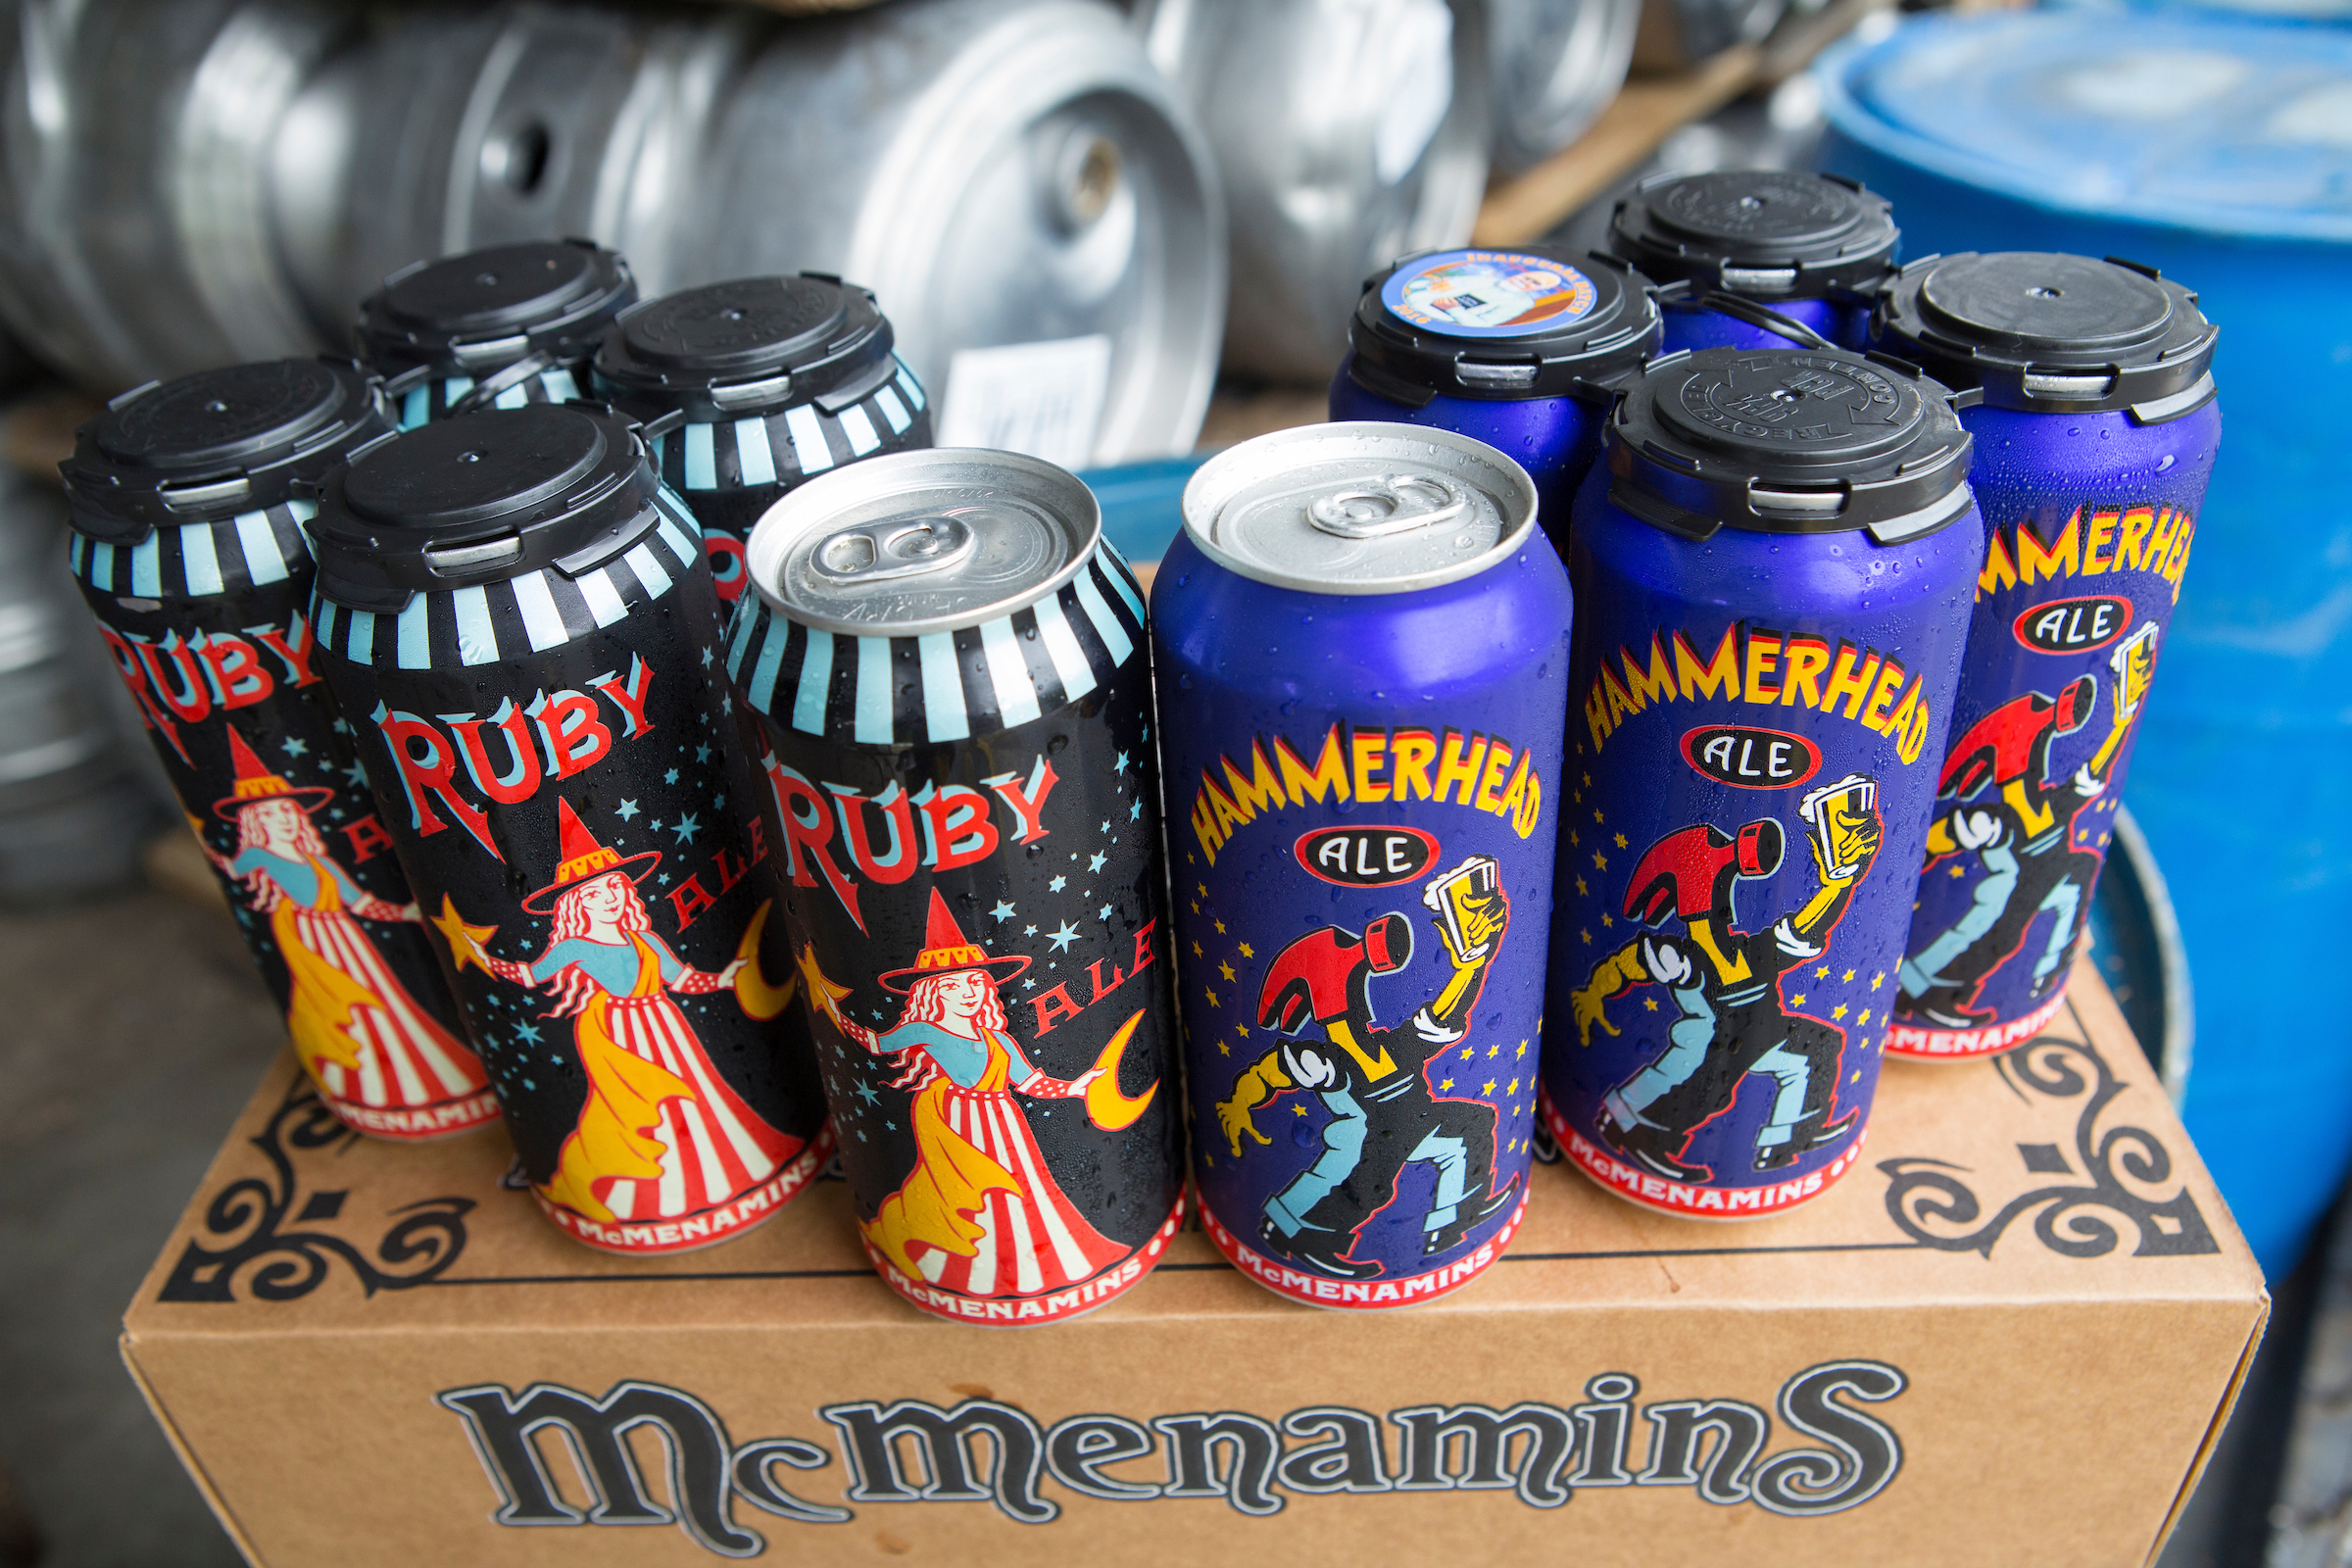 Cans of McMenamins Ruby and Hammerhead Ale. (image courtesy of McMenamins & Kathleen Nyberg)